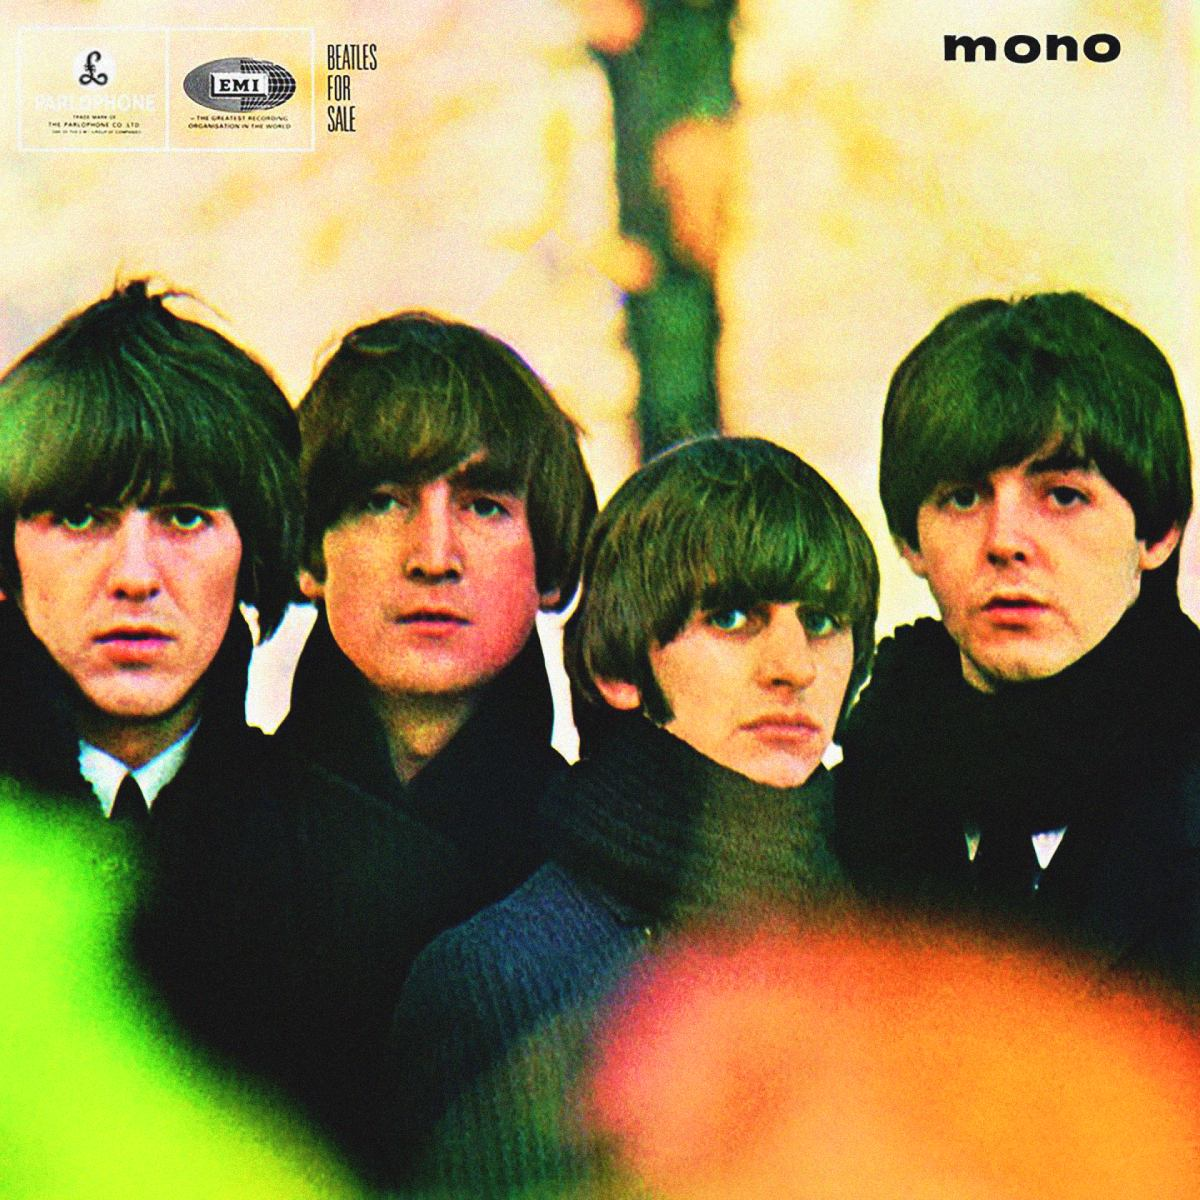 Beatles For Sale (1964)